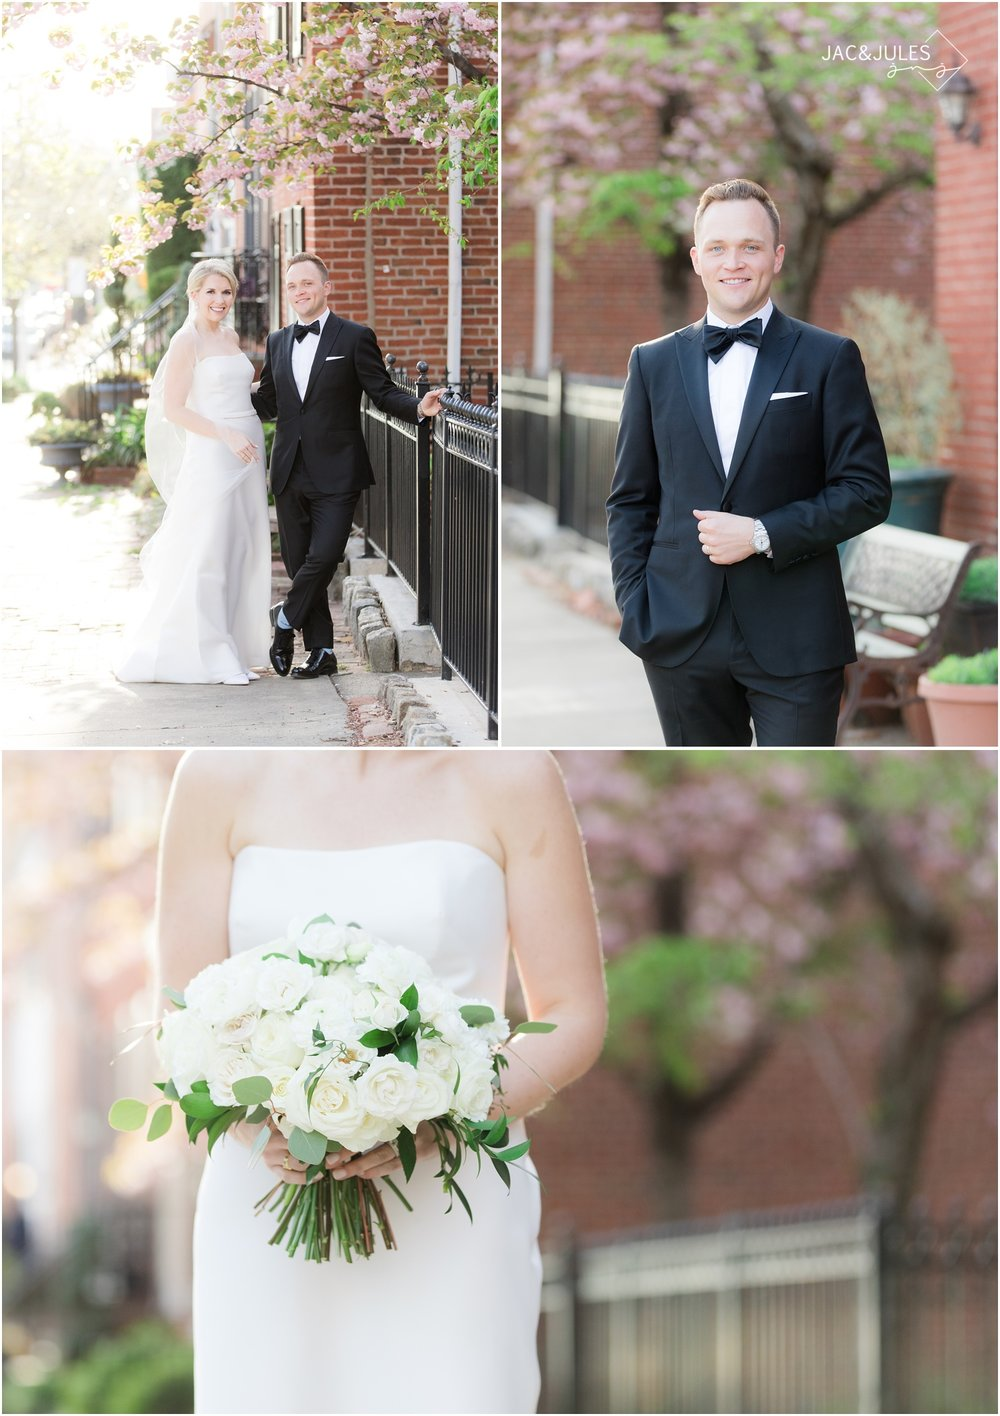 Classic photos of bride and groom on downtown Baltimore street.